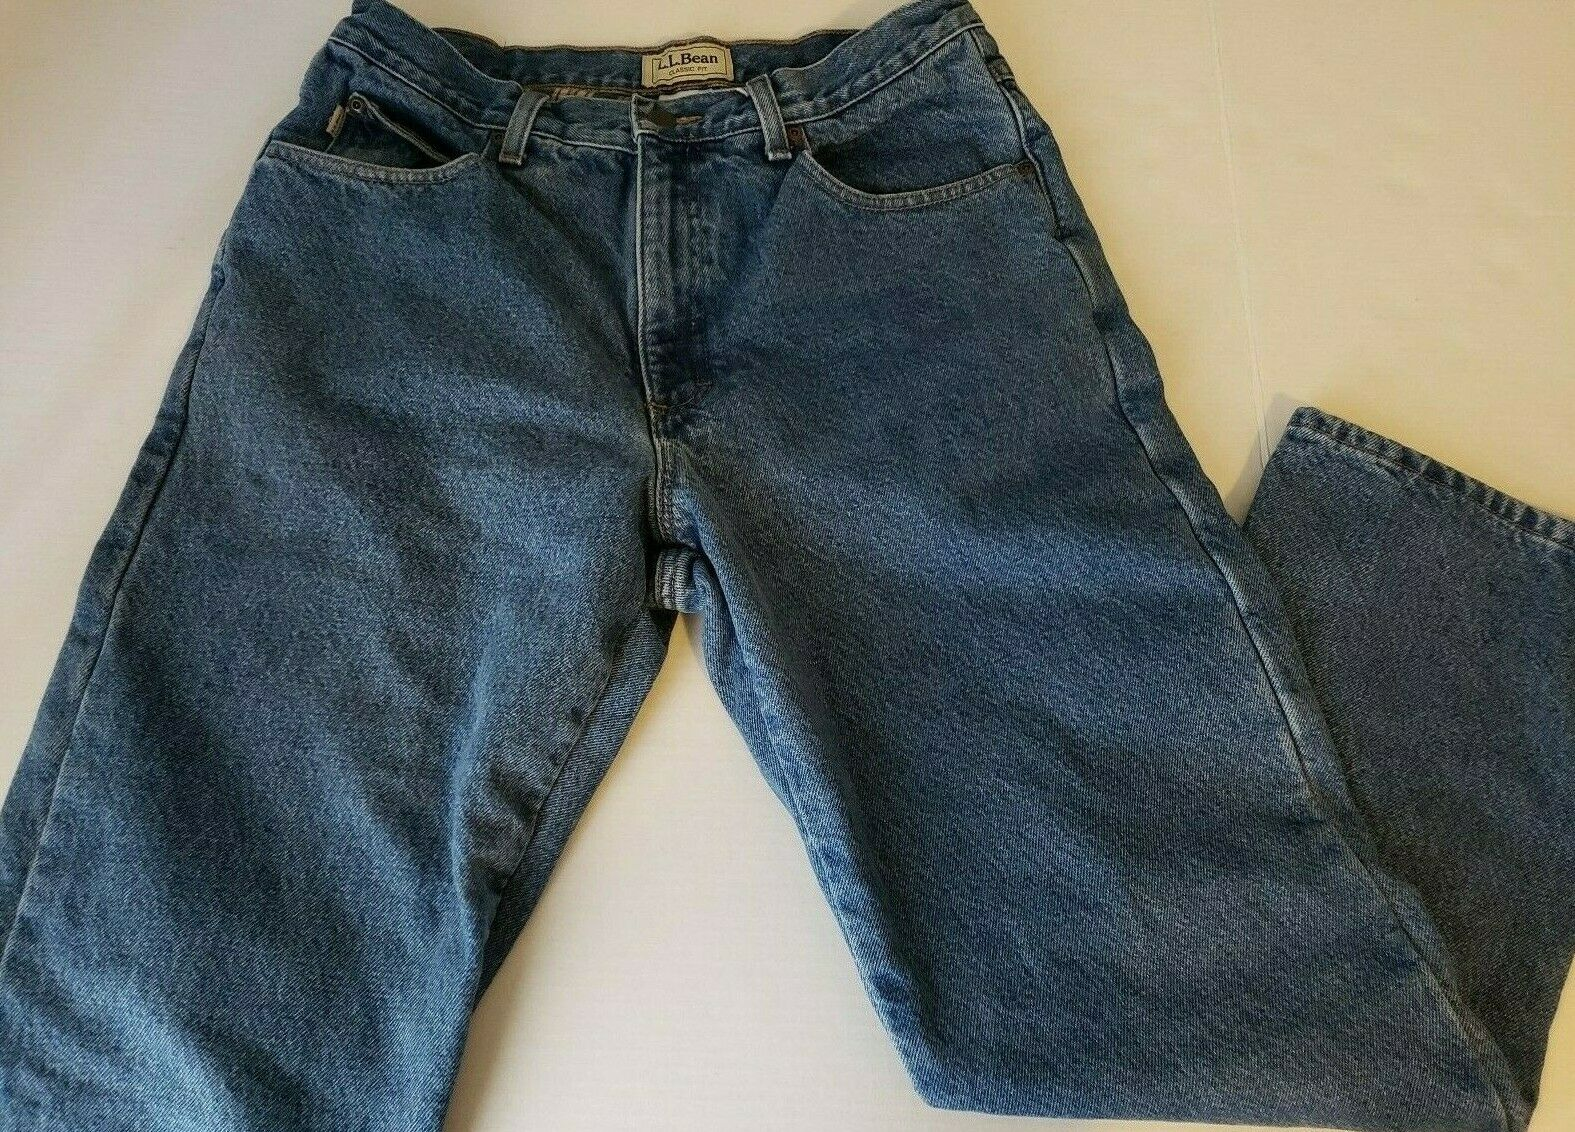 LL BEAN Classic Jeans Mens Sz 33x29 Lined Flannel Relaxed Fit Medium Wash Cotton